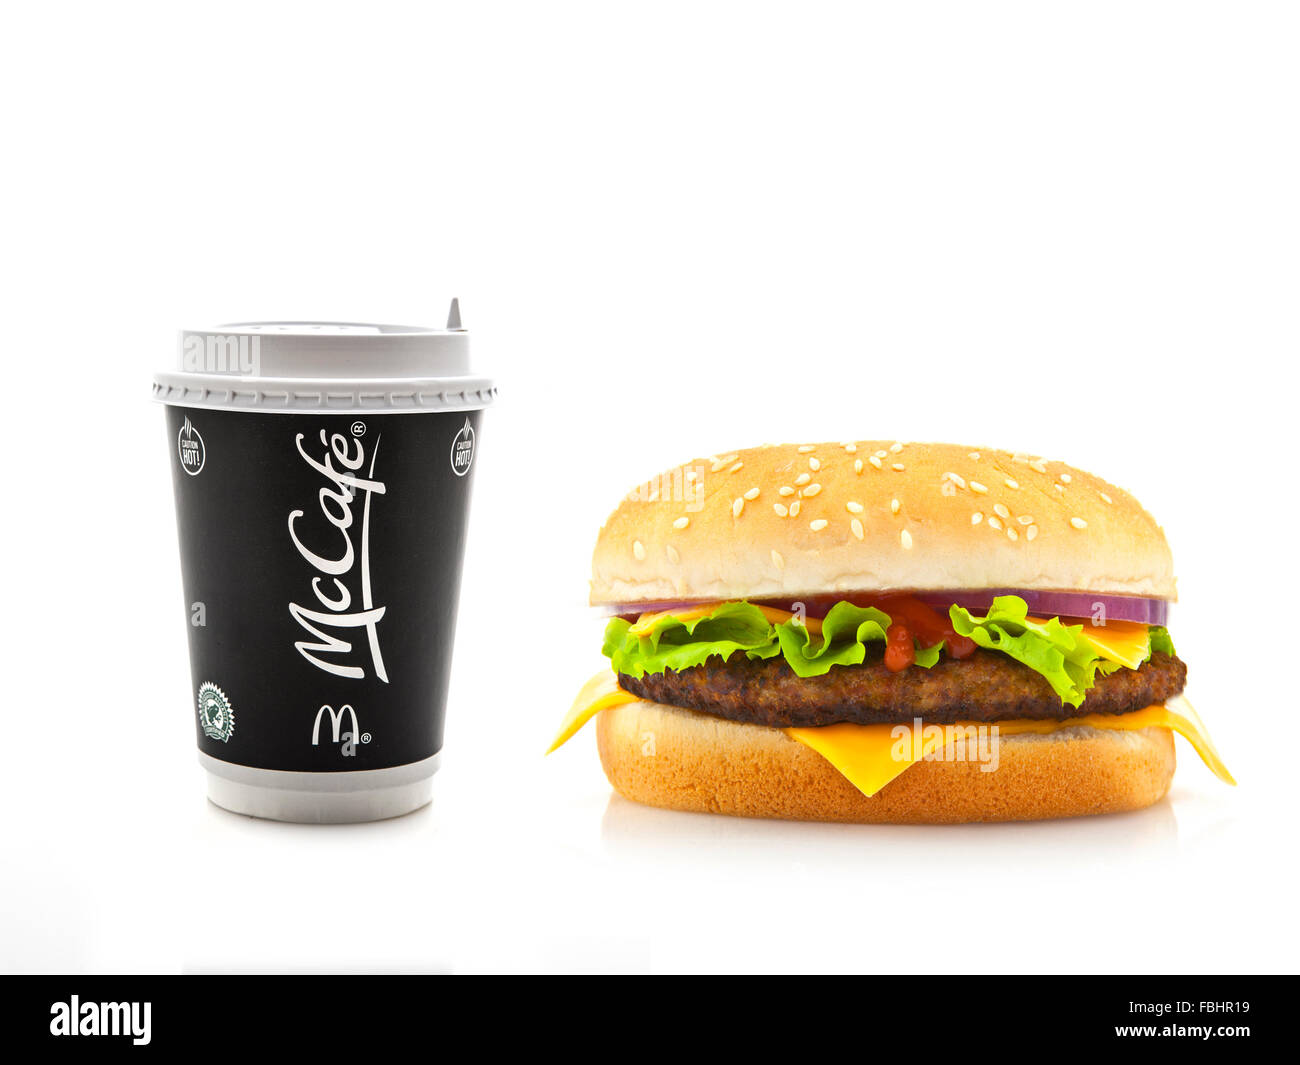 Mcdonalds Stock Photos & Mcdonalds Stock Images - Alamy